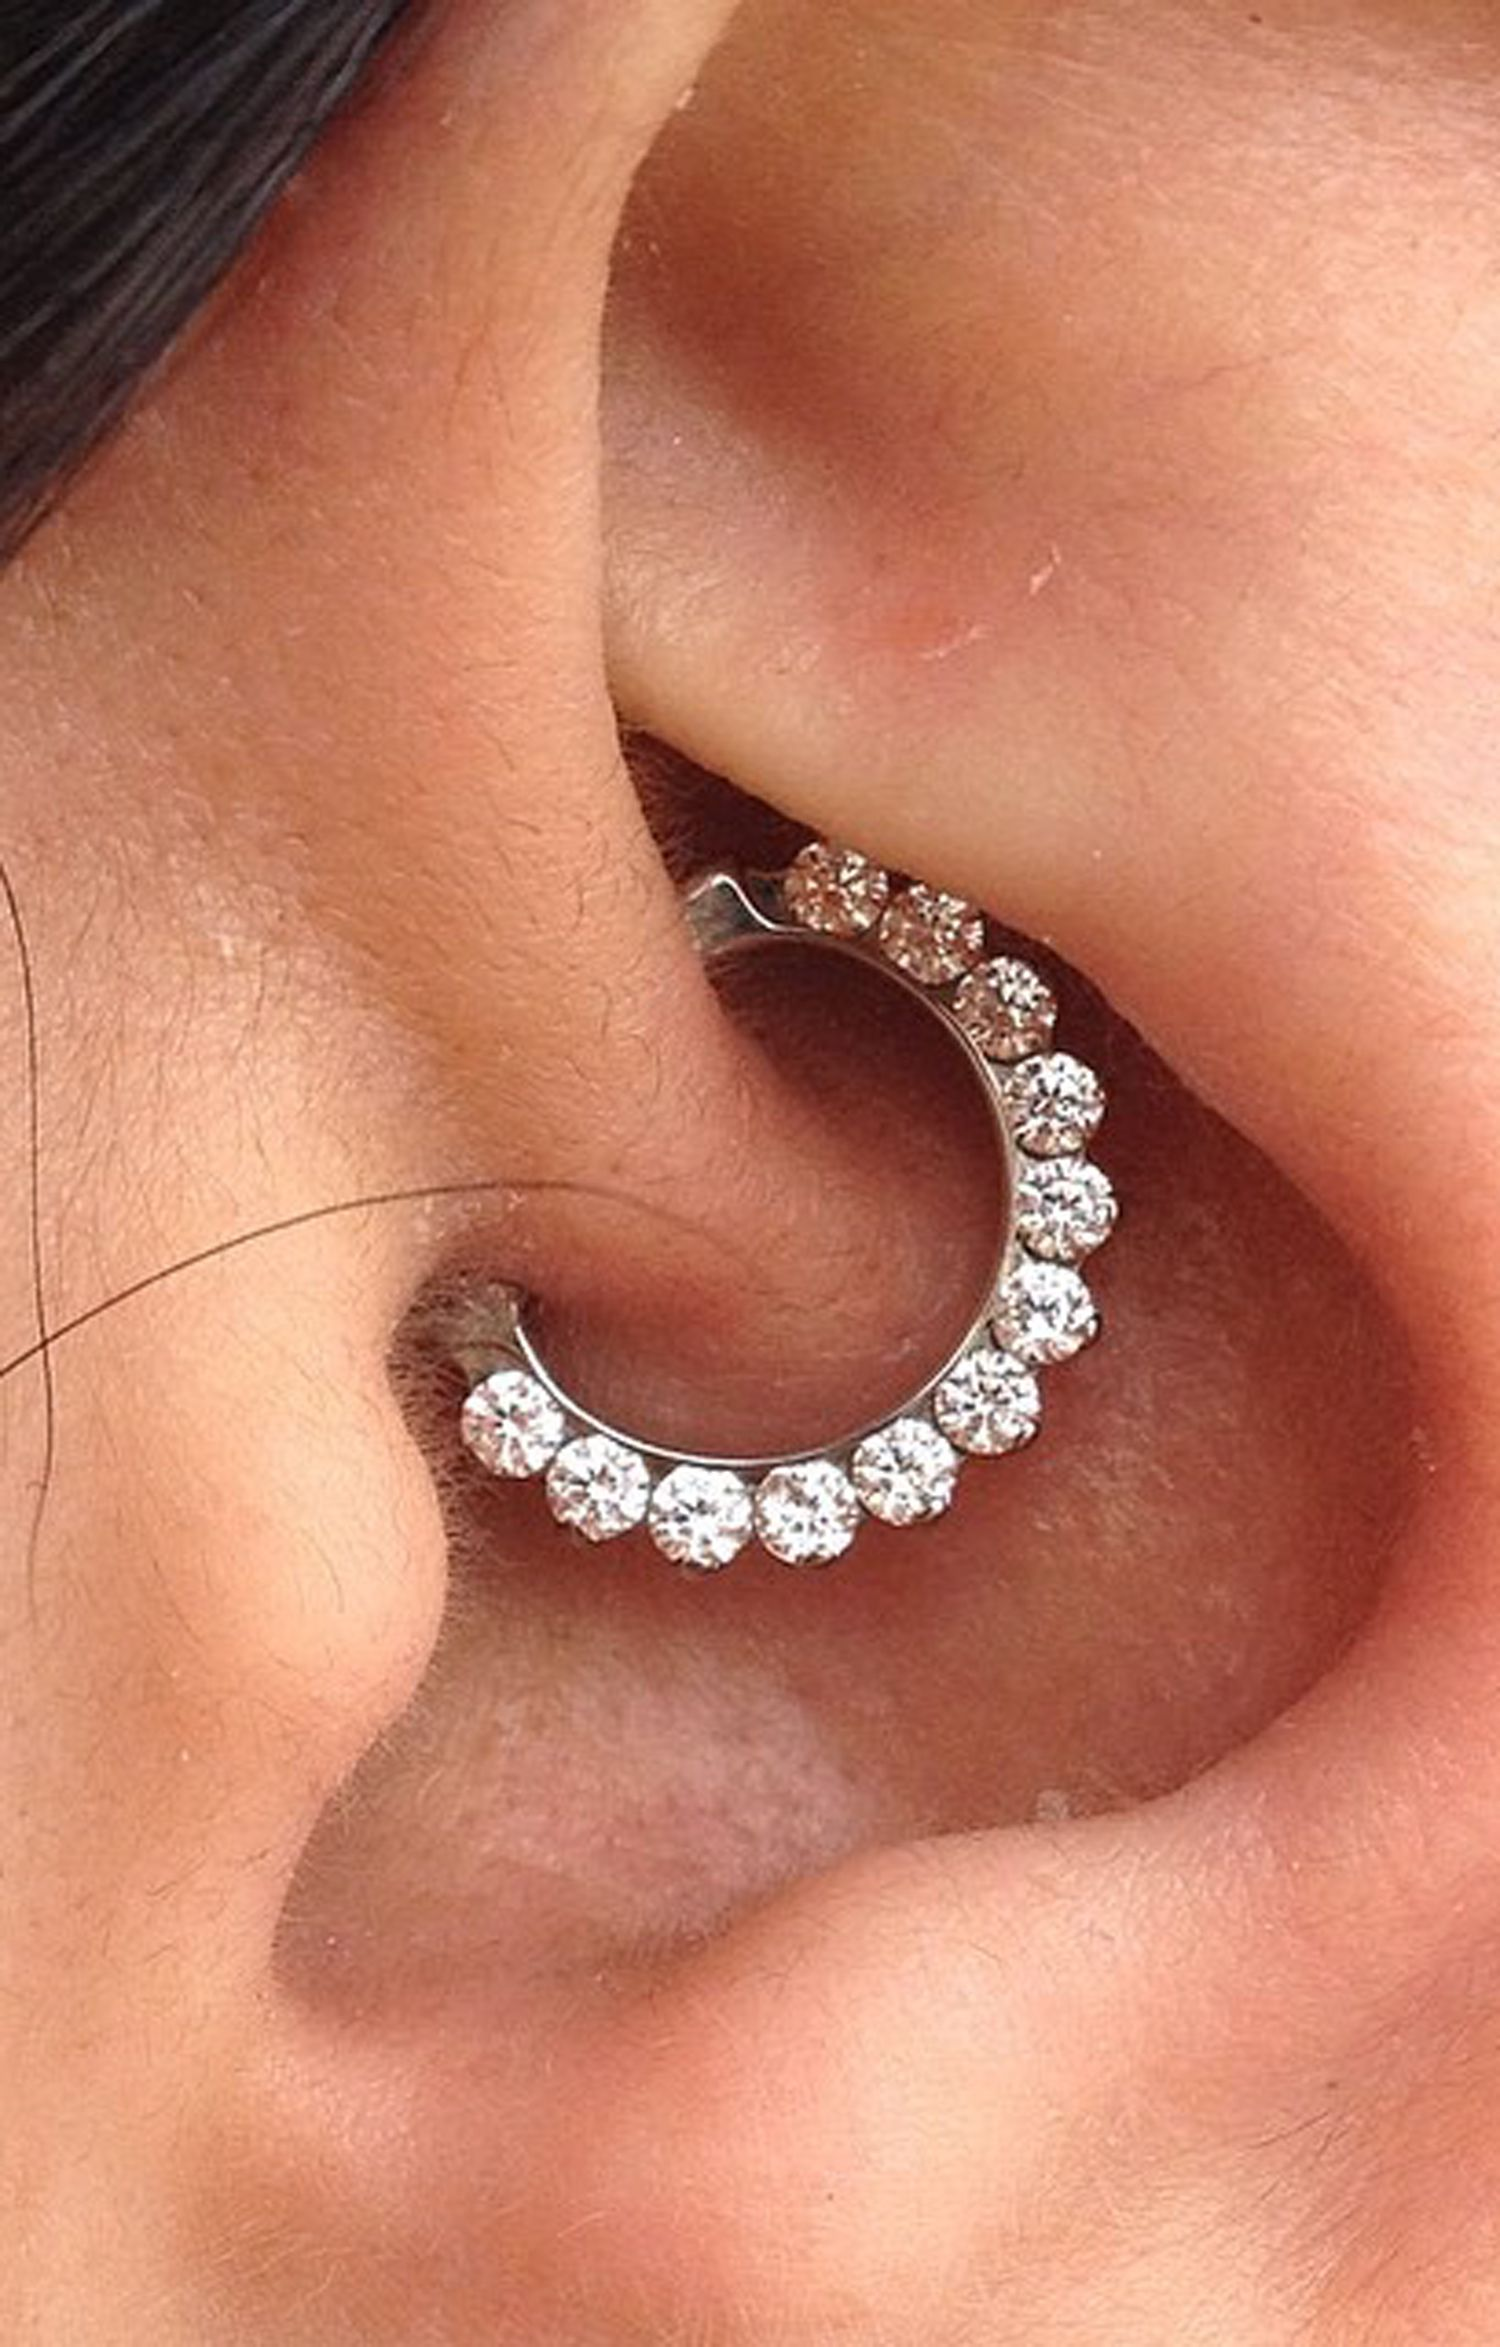 Brice Swarovski Crystal Clicker In Silver Daith Earrings Daith